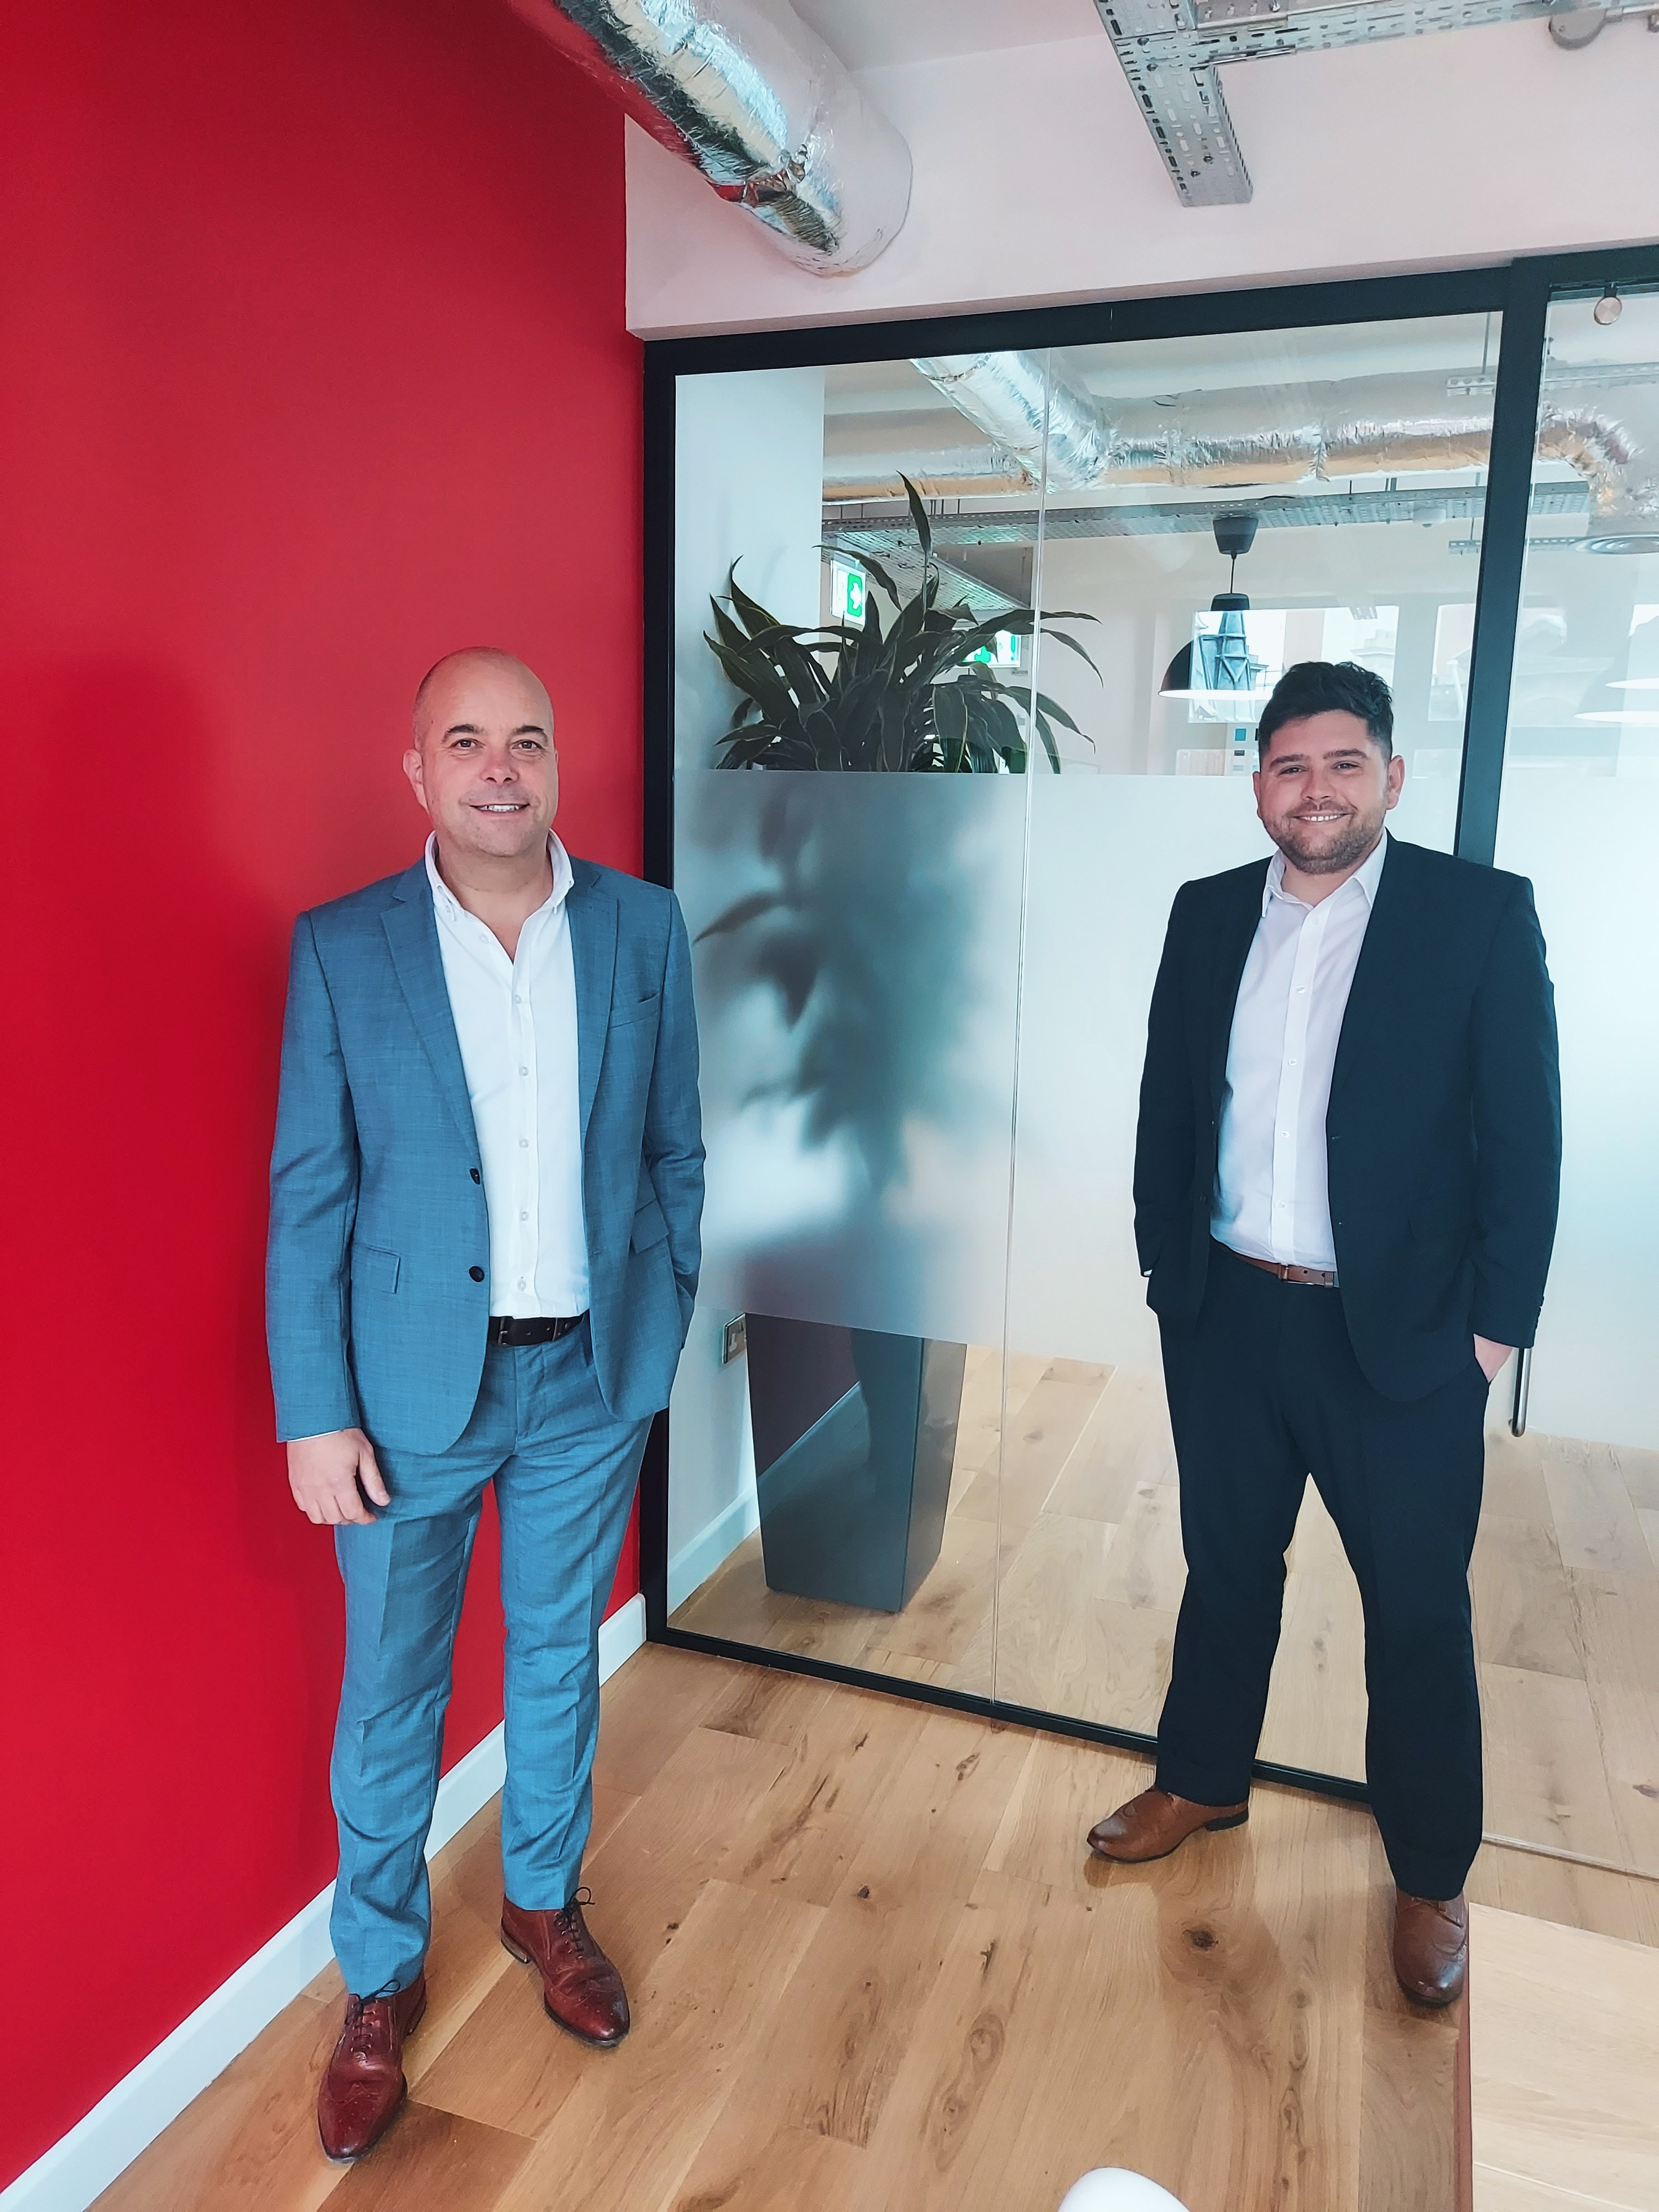 Stars align for Covid-hit recruitment pro as Capella appoints new business manager